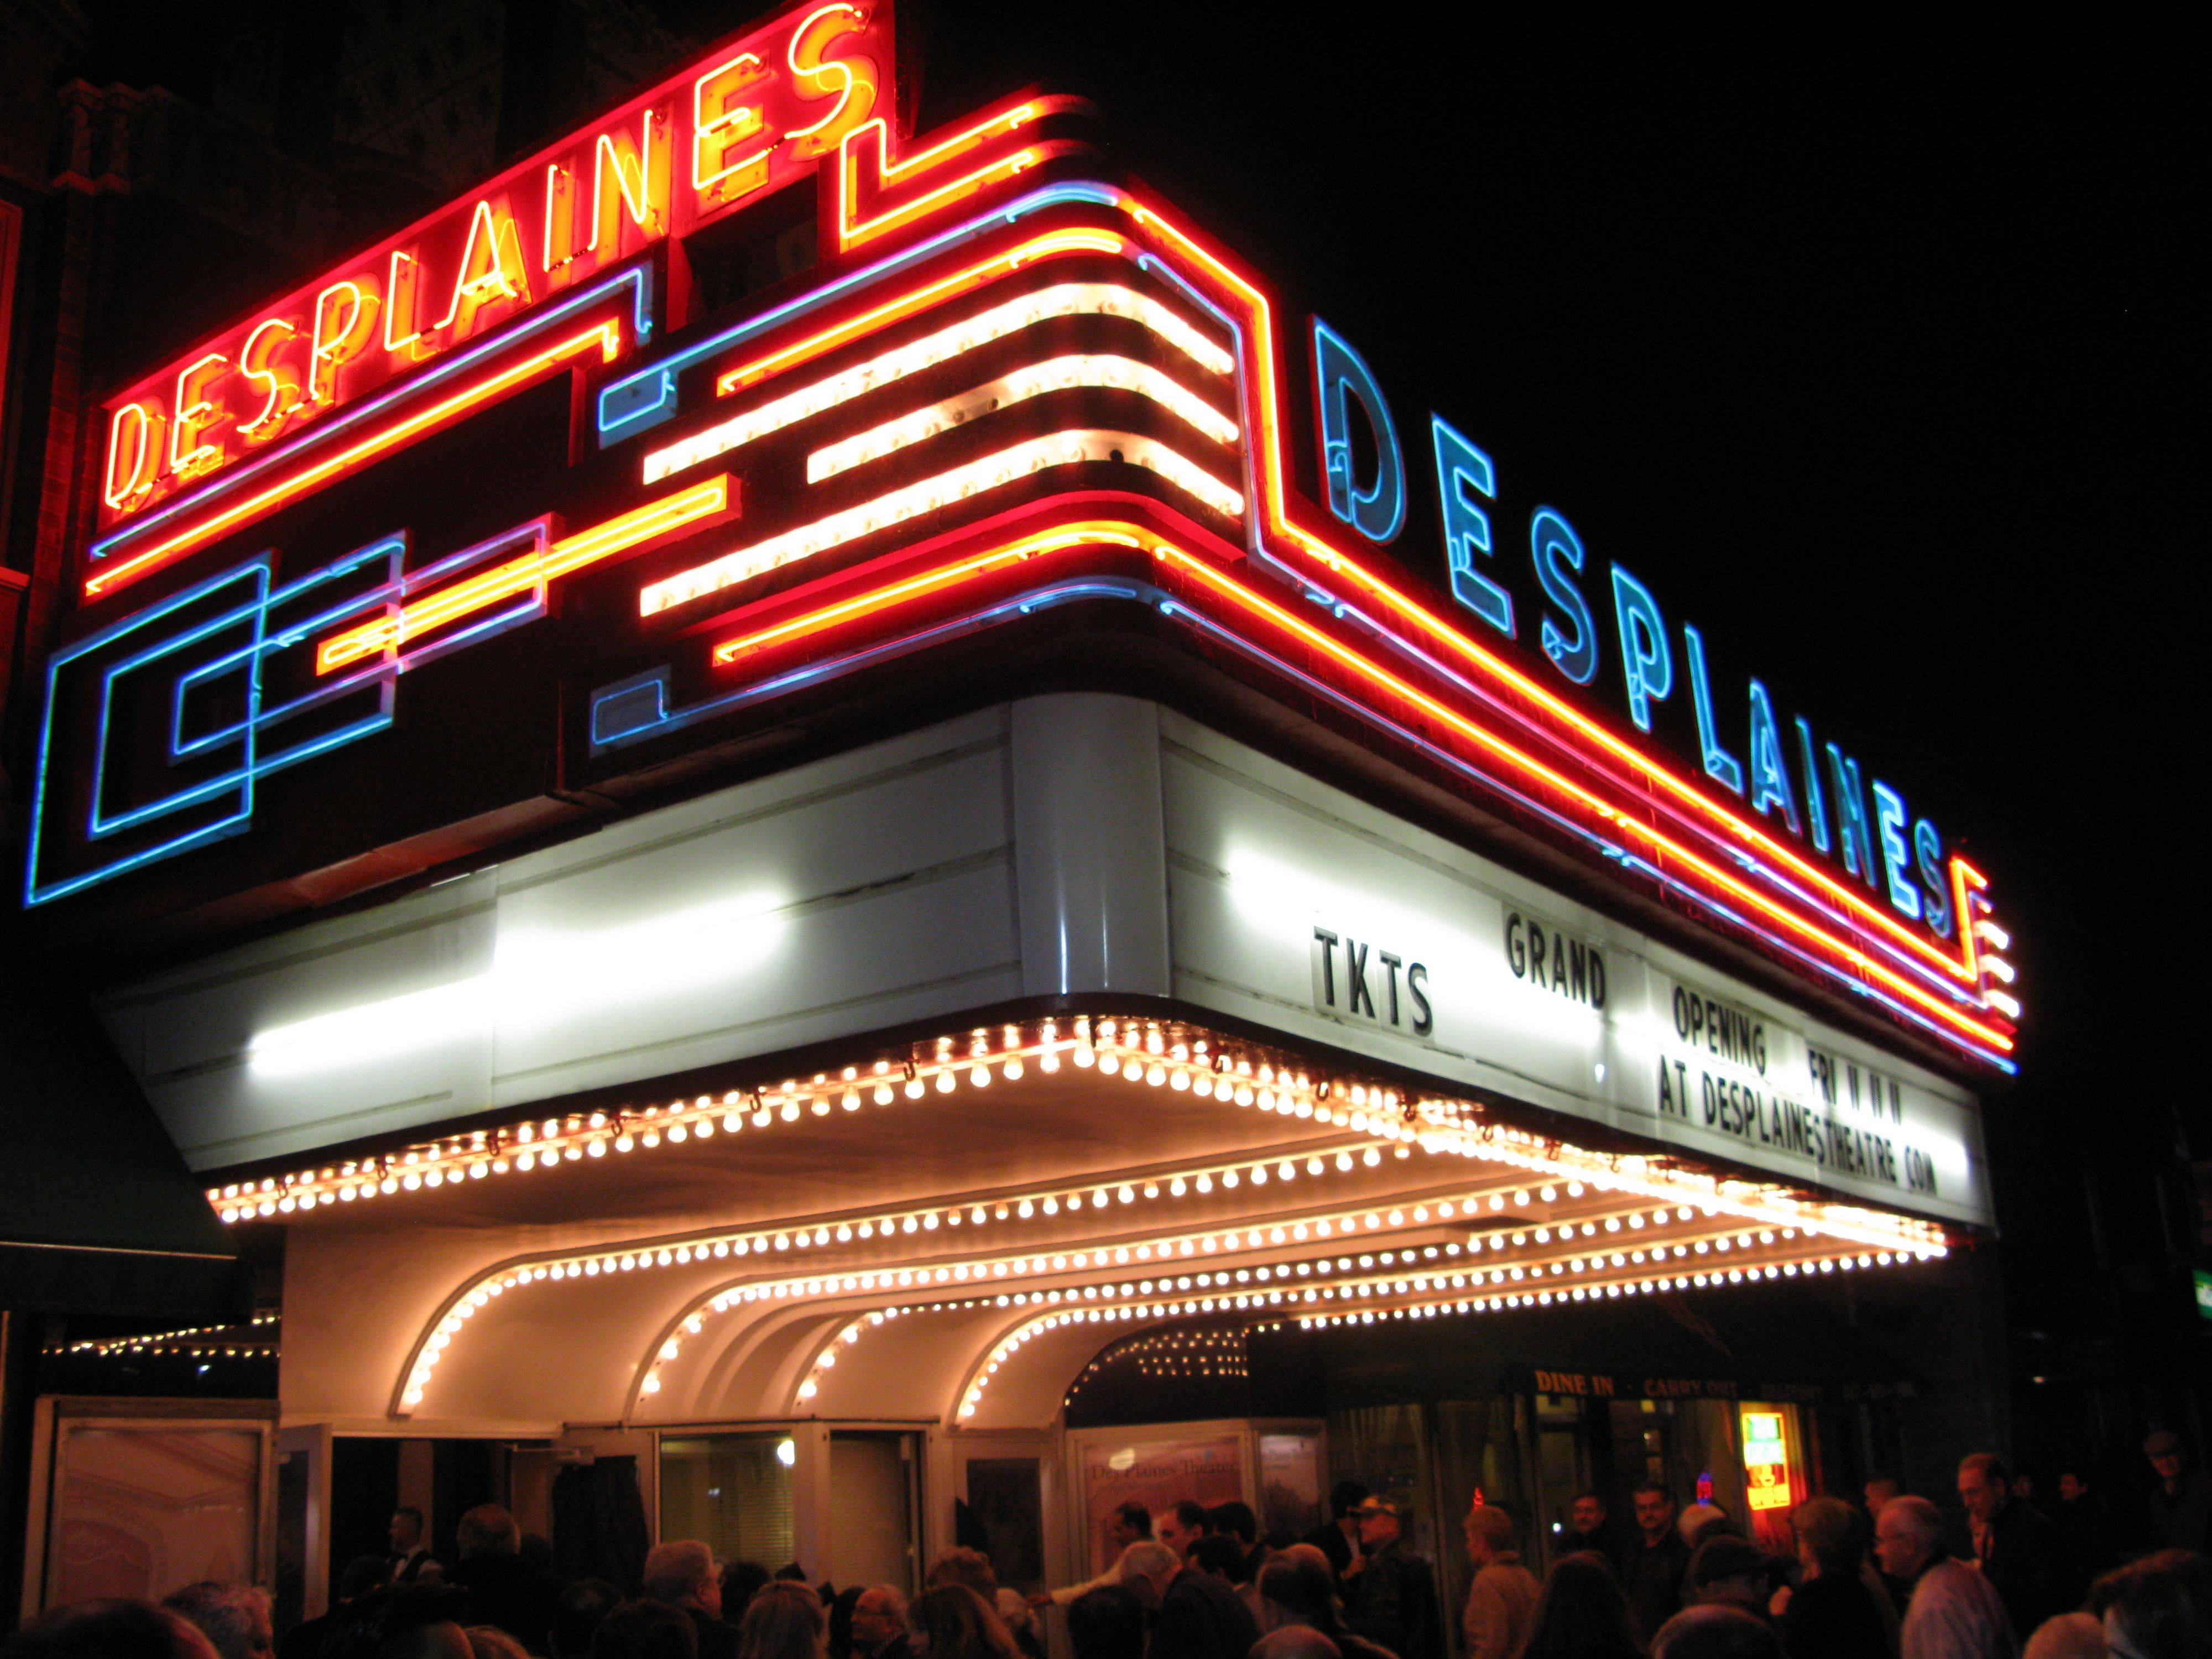 More than 300 people witnessed the marquee lights of the Des Plaines Theatre go on for the first time in two years Friday.